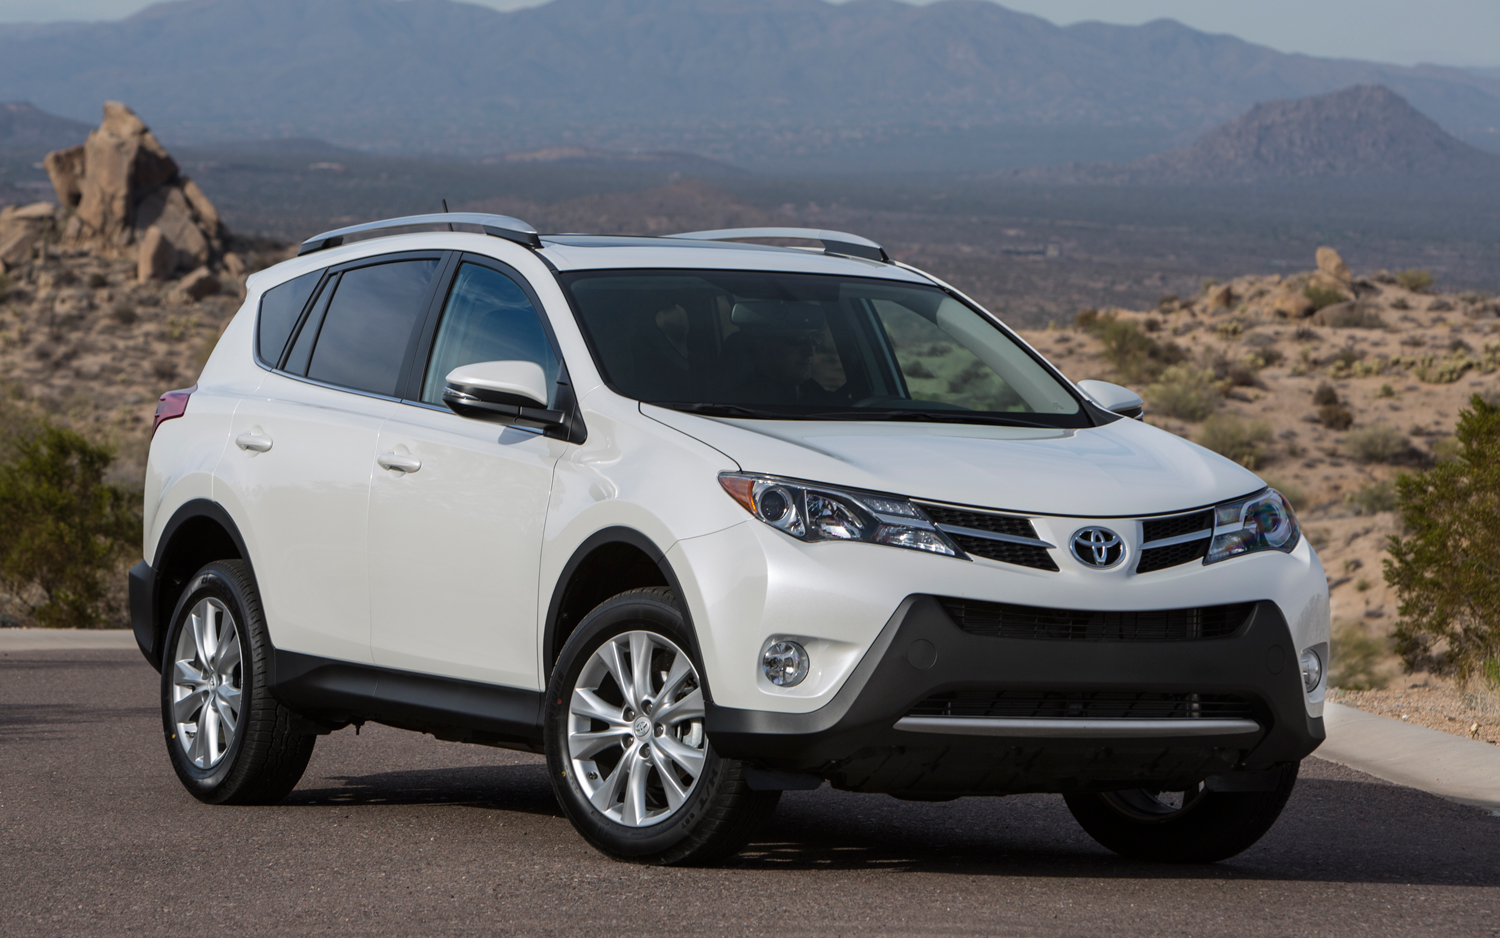 Latest Cars Models: Toyota rav4 2013